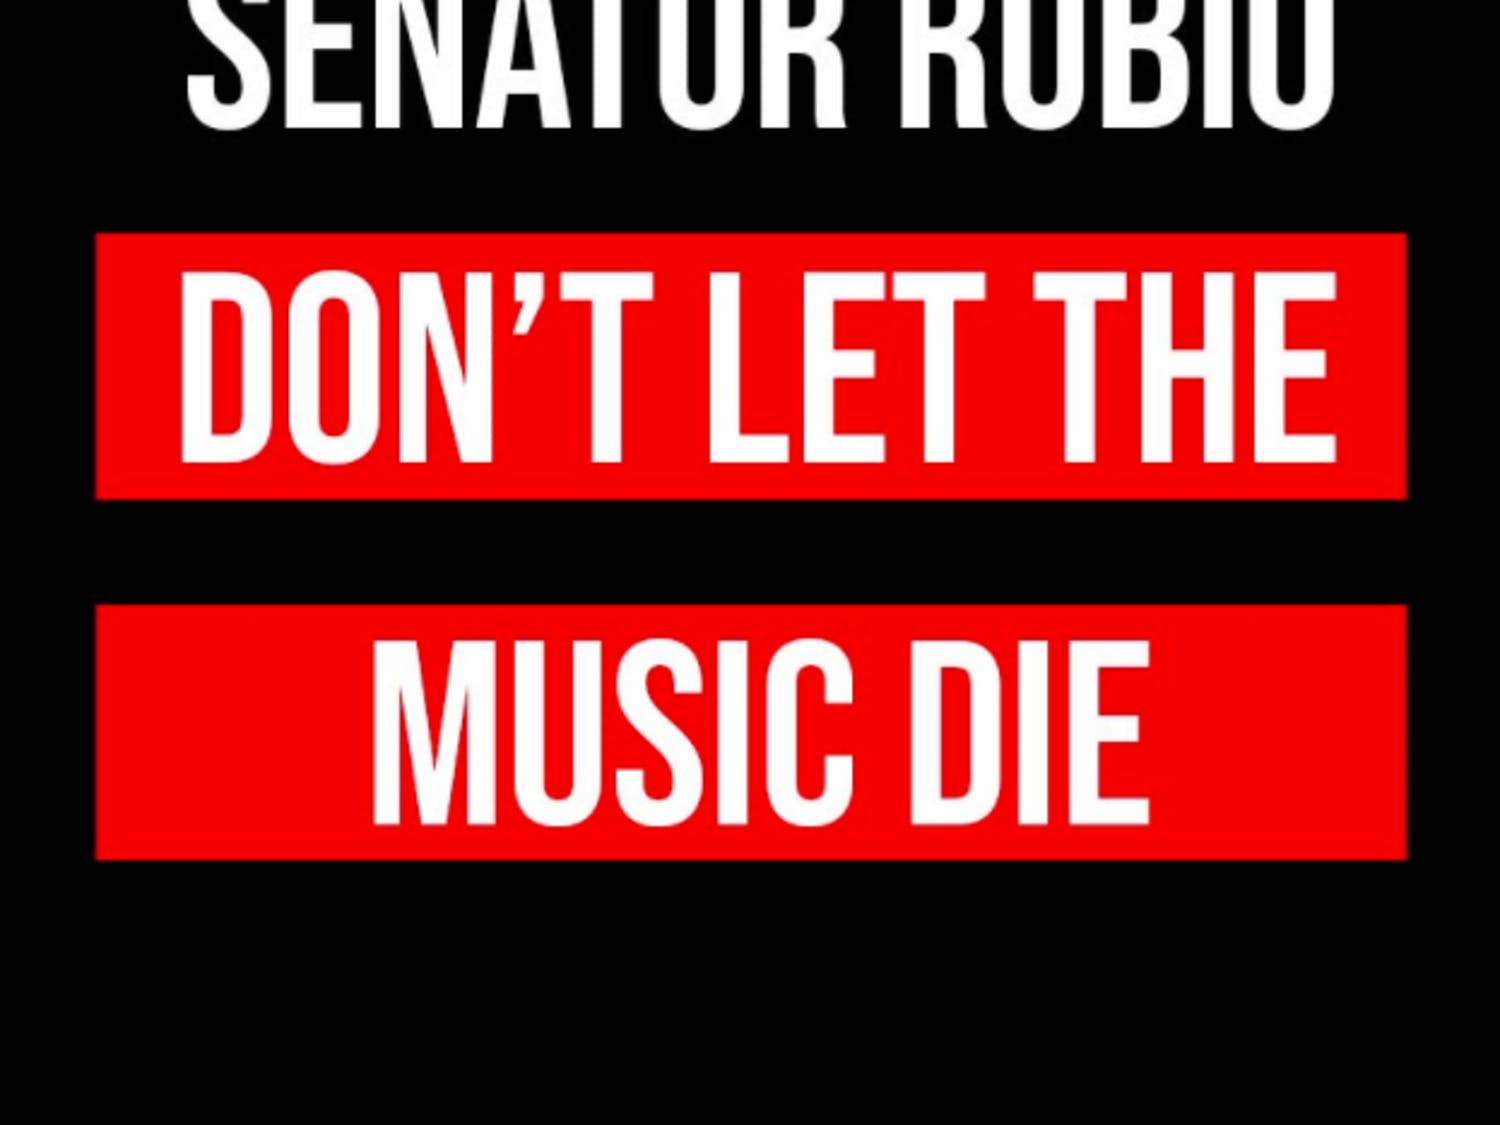 The Save Our Stages Act is a bipartisan U.S. Senate effort to support independent music venues nationwide amid pandemic shutdowns.